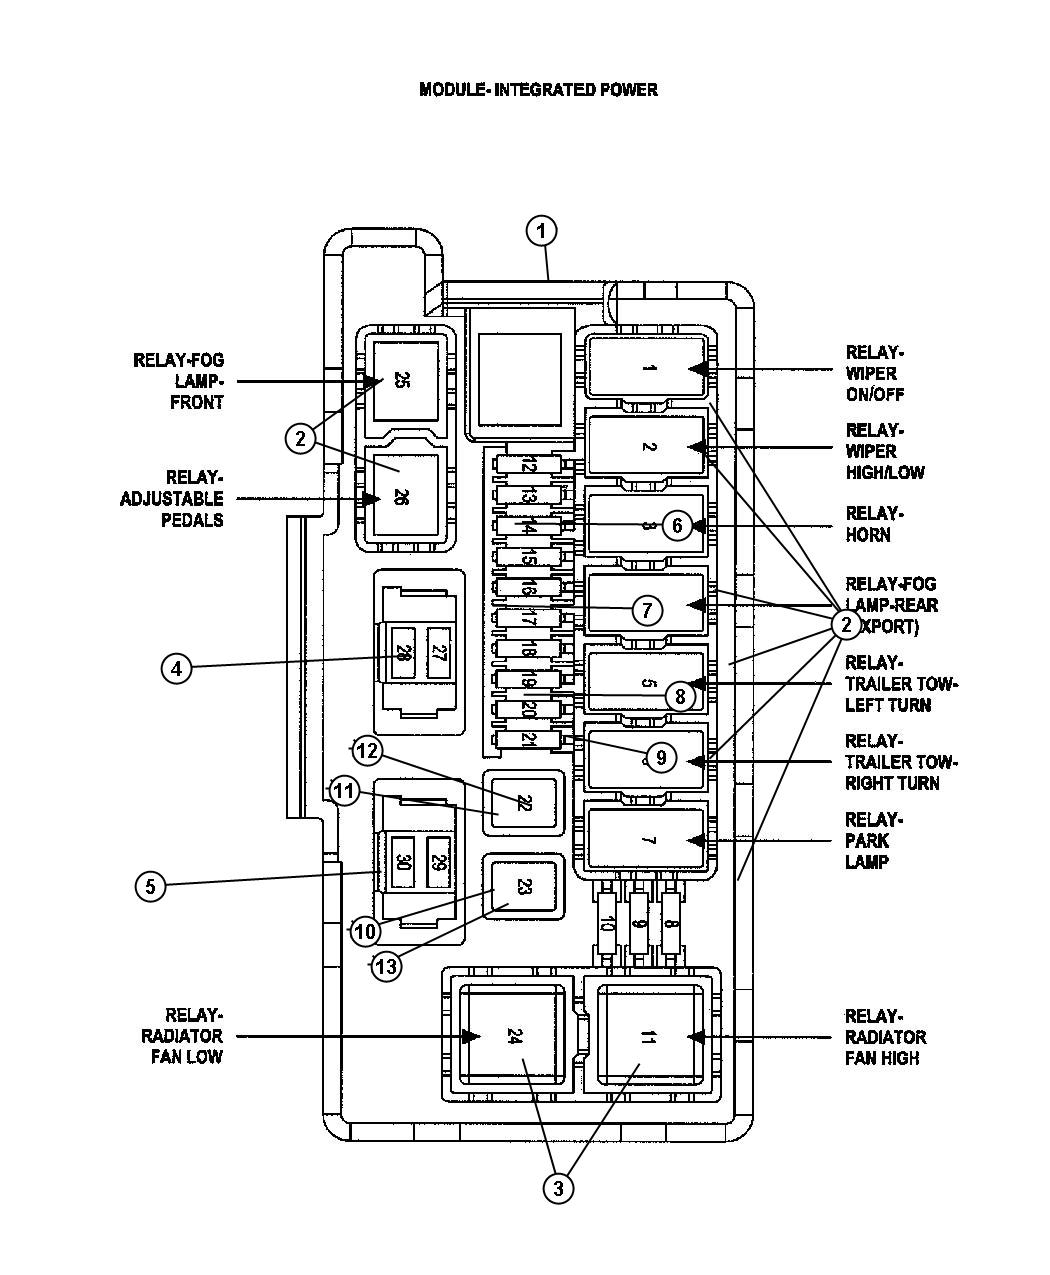 i2163577 jeep stereo wiring diagram jeep free wiring diagrams 2008 jeep wrangler horn wiring diagram at gsmportal.co